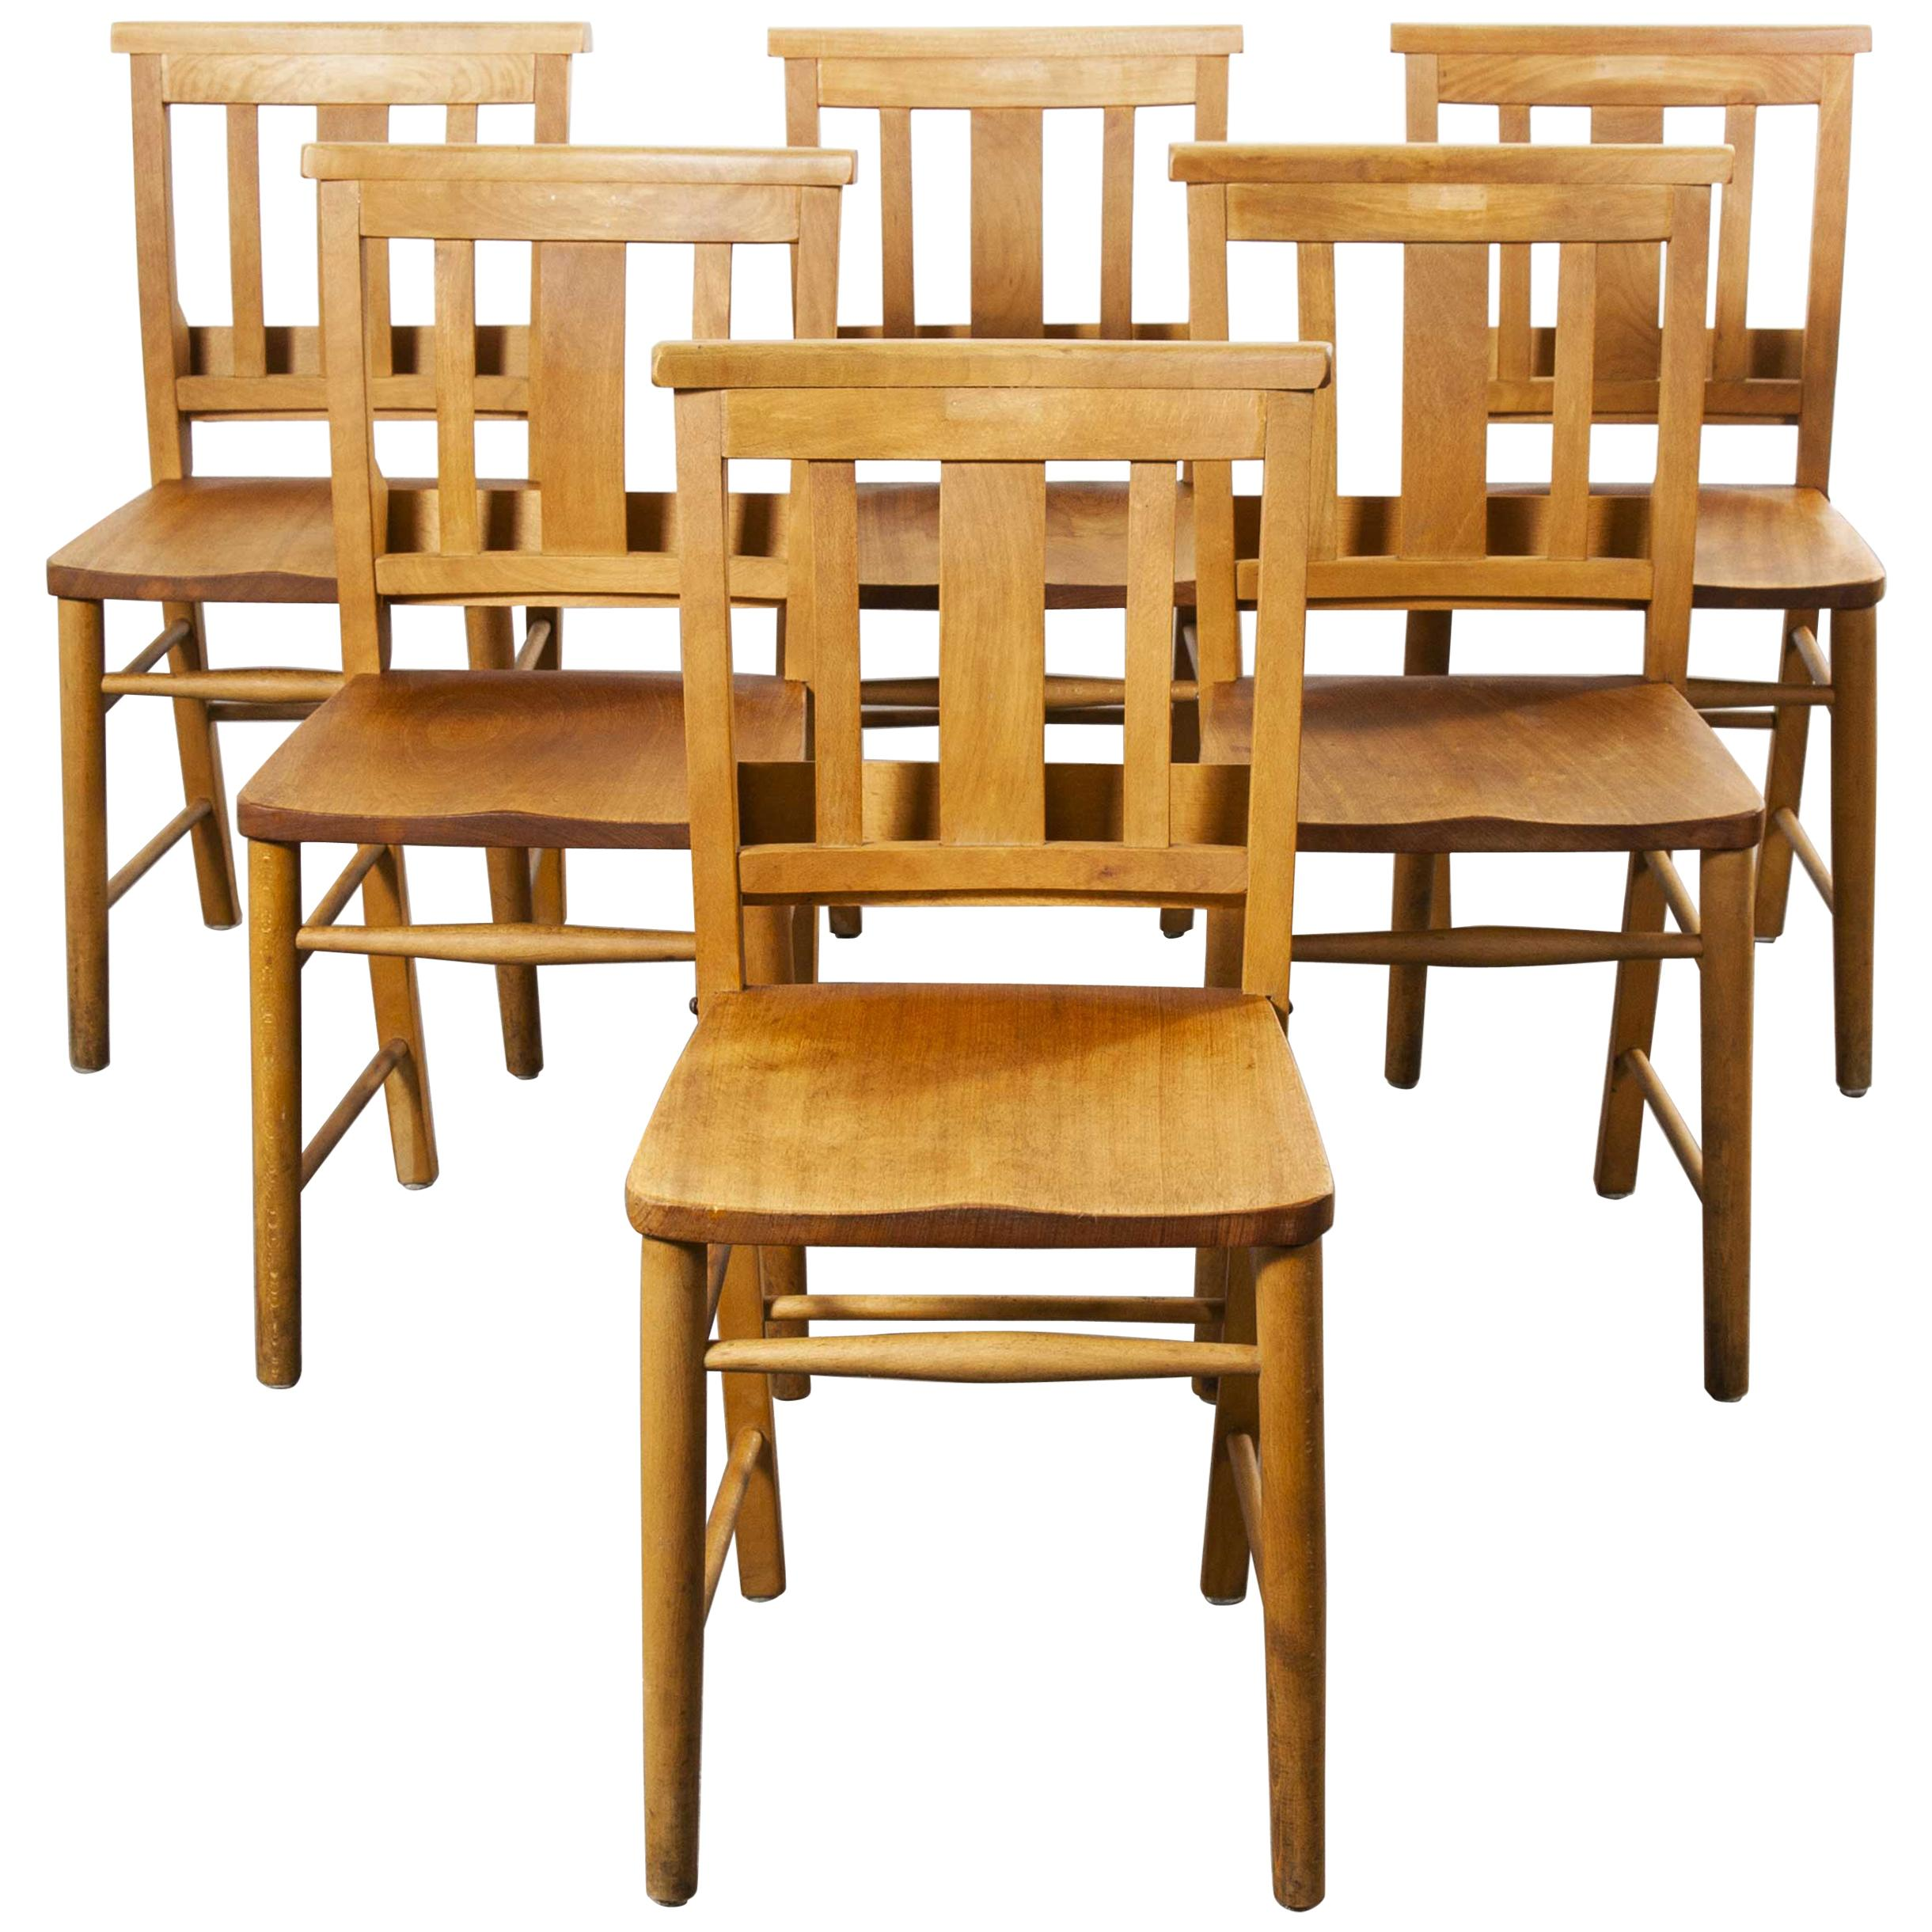 1960s British Beech Church, Chapel Dining Chairs, Set of Six